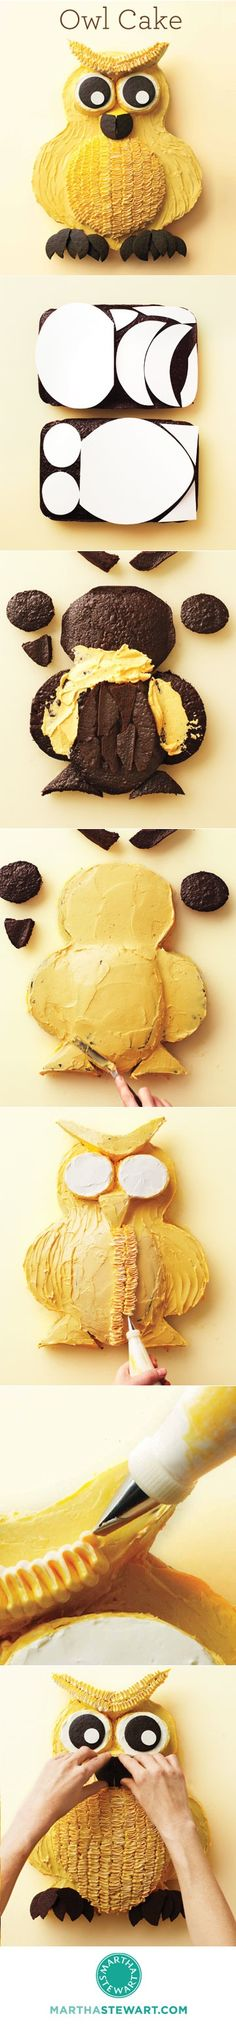 Owl Cake How-To...